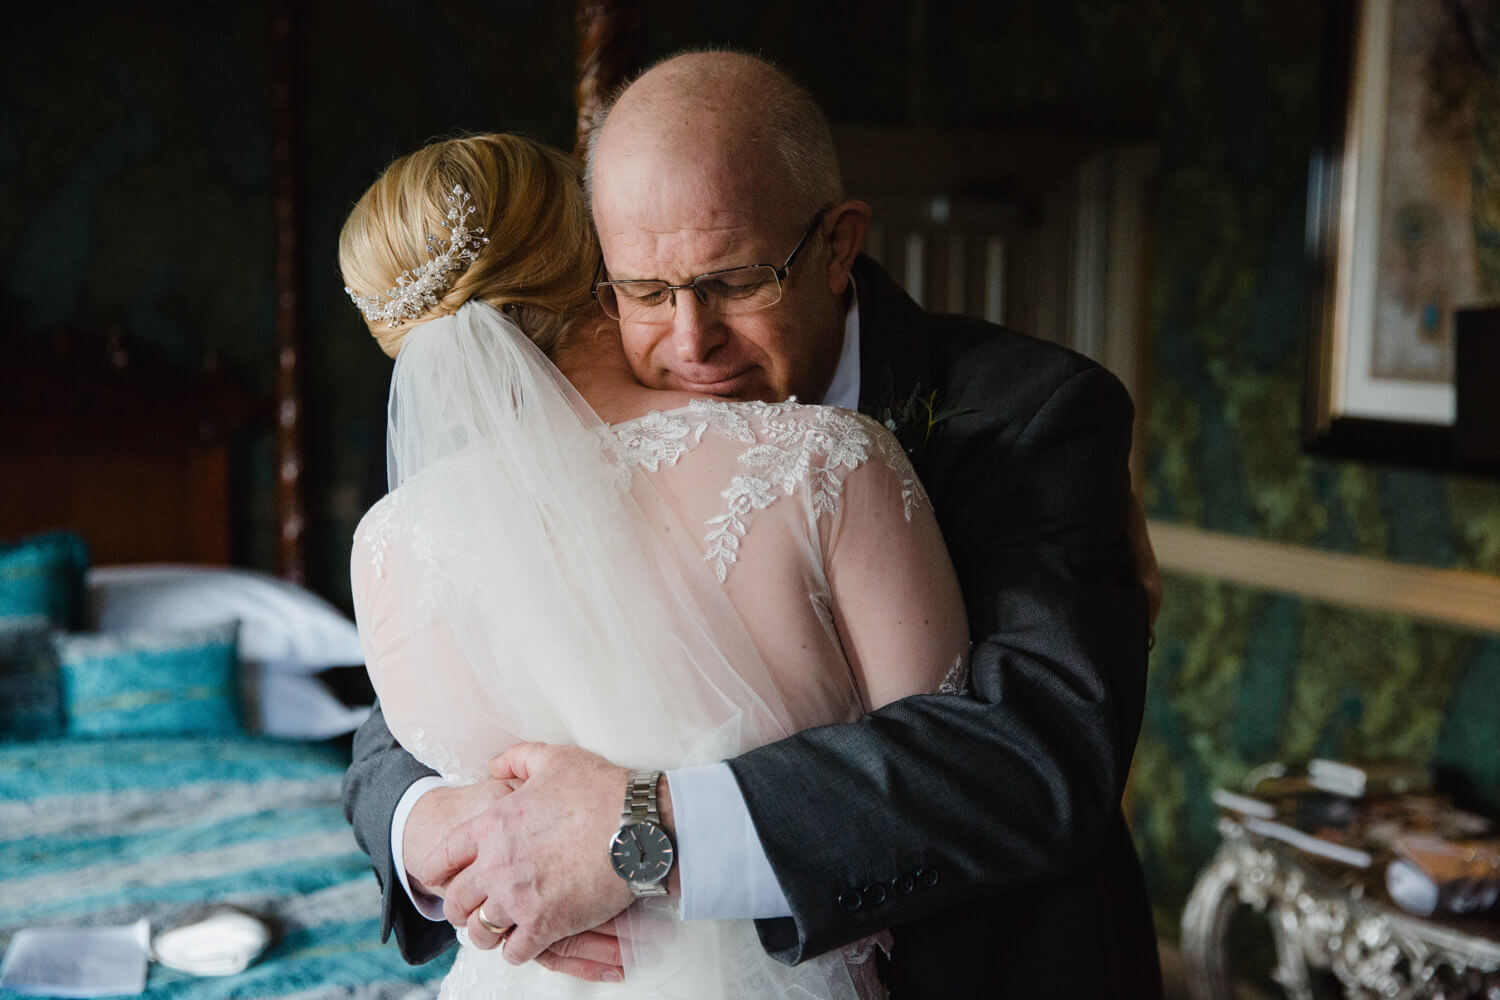 Truly memorable moment when brides dad shared an intimate hug before the wedding ceremony